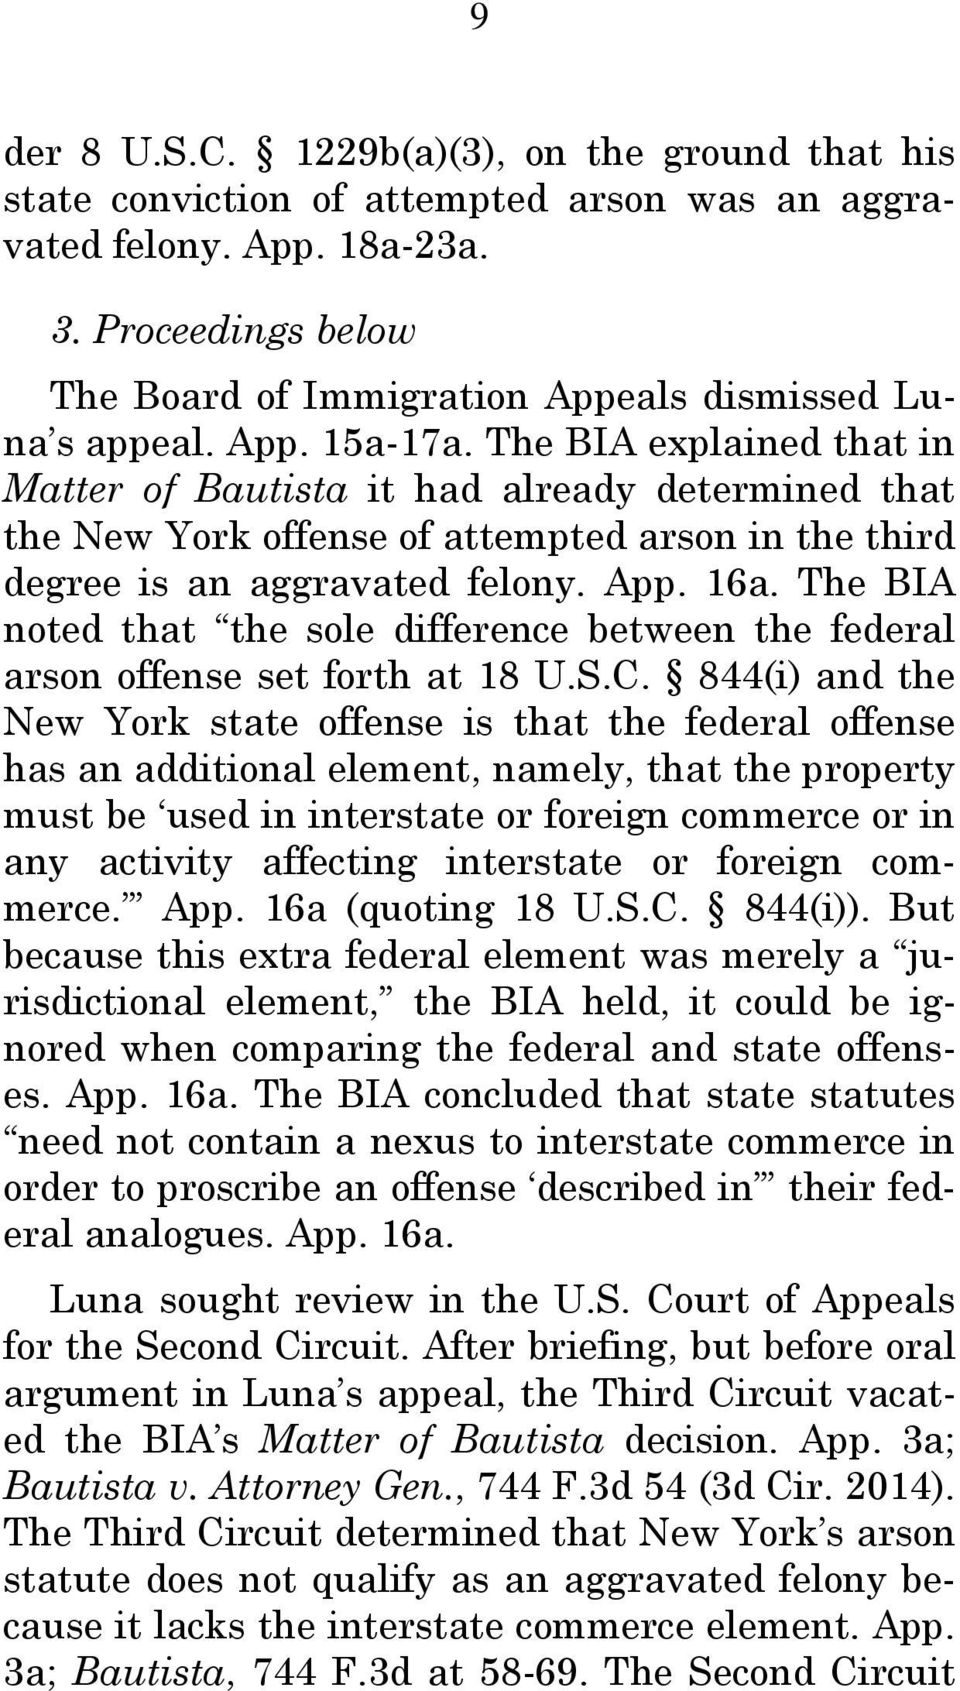 The BIA explained that in Matter of Bautista it had already determined that the New York offense of attempted arson in the third degree is an aggravated felony. App. 16a.